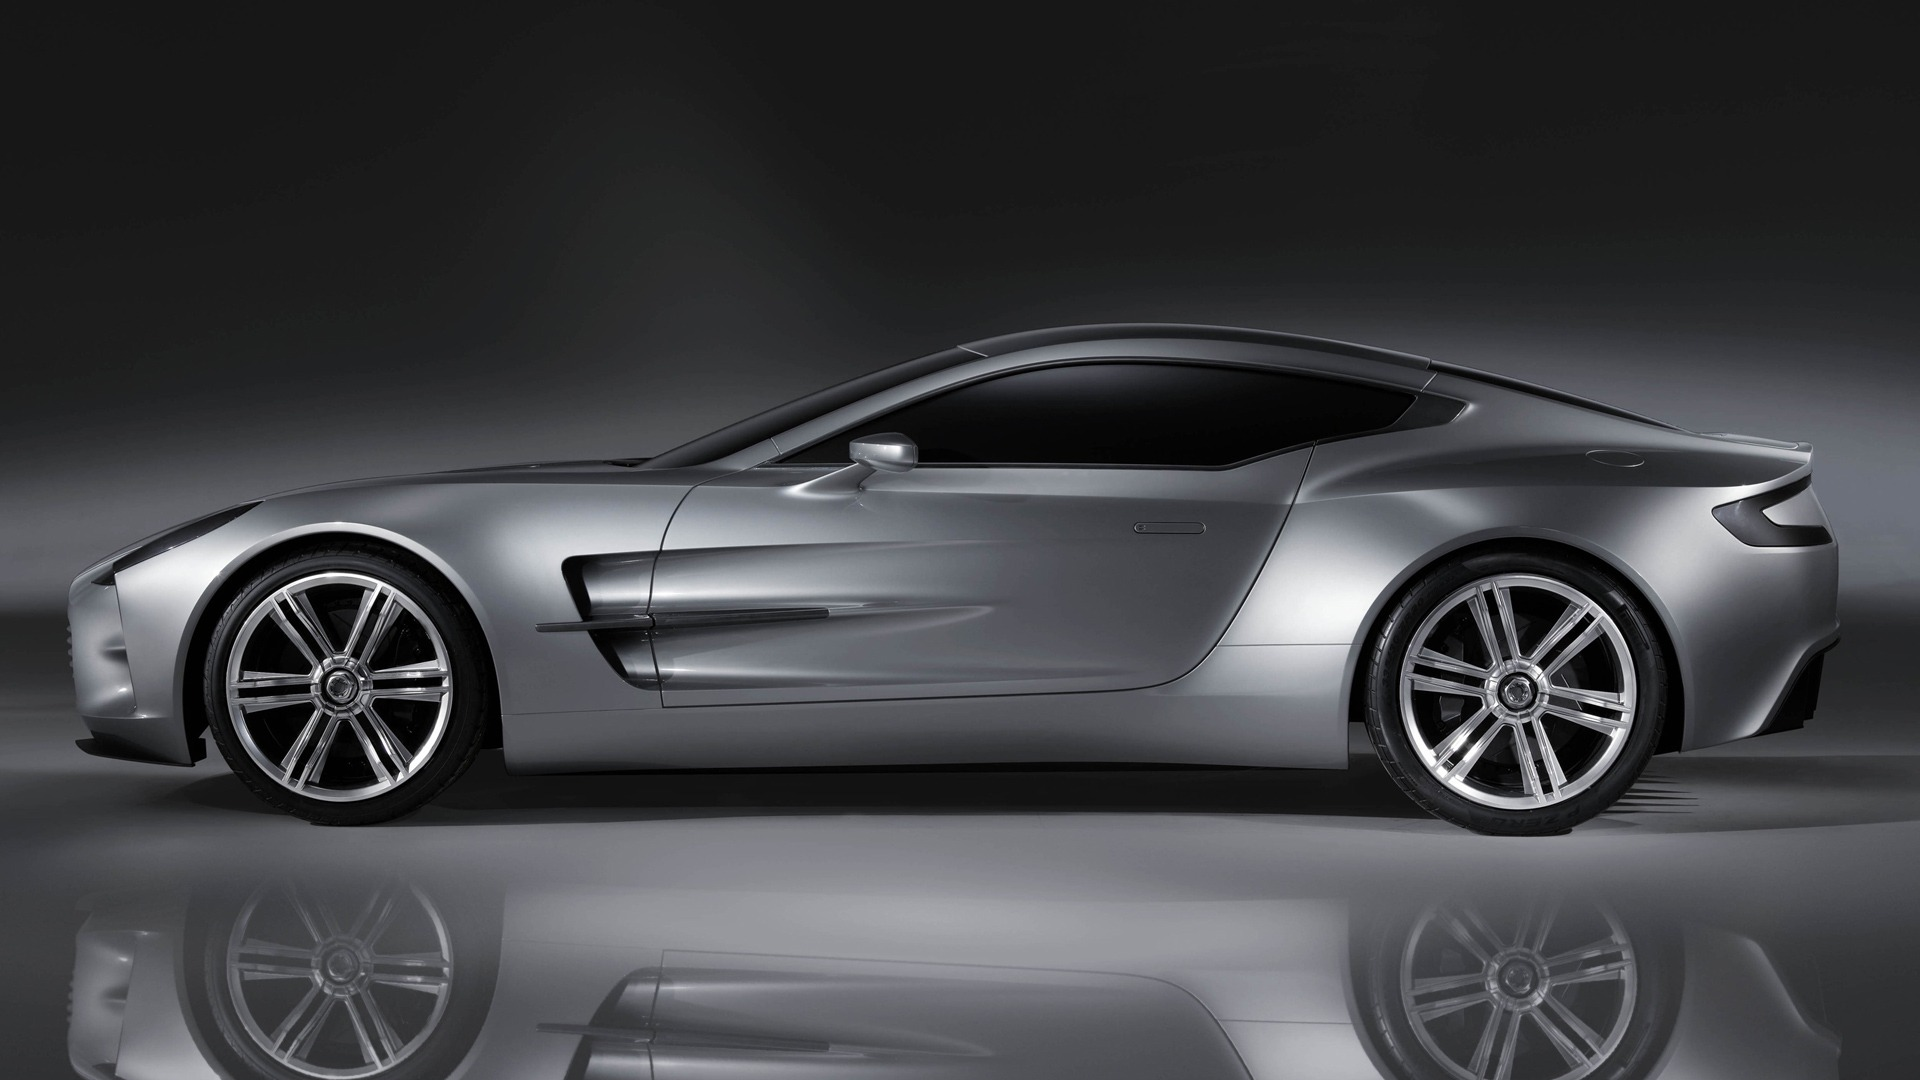 One 77 Wallpaper Aston Martin Cars Wallpapers In Jpg Format For Free